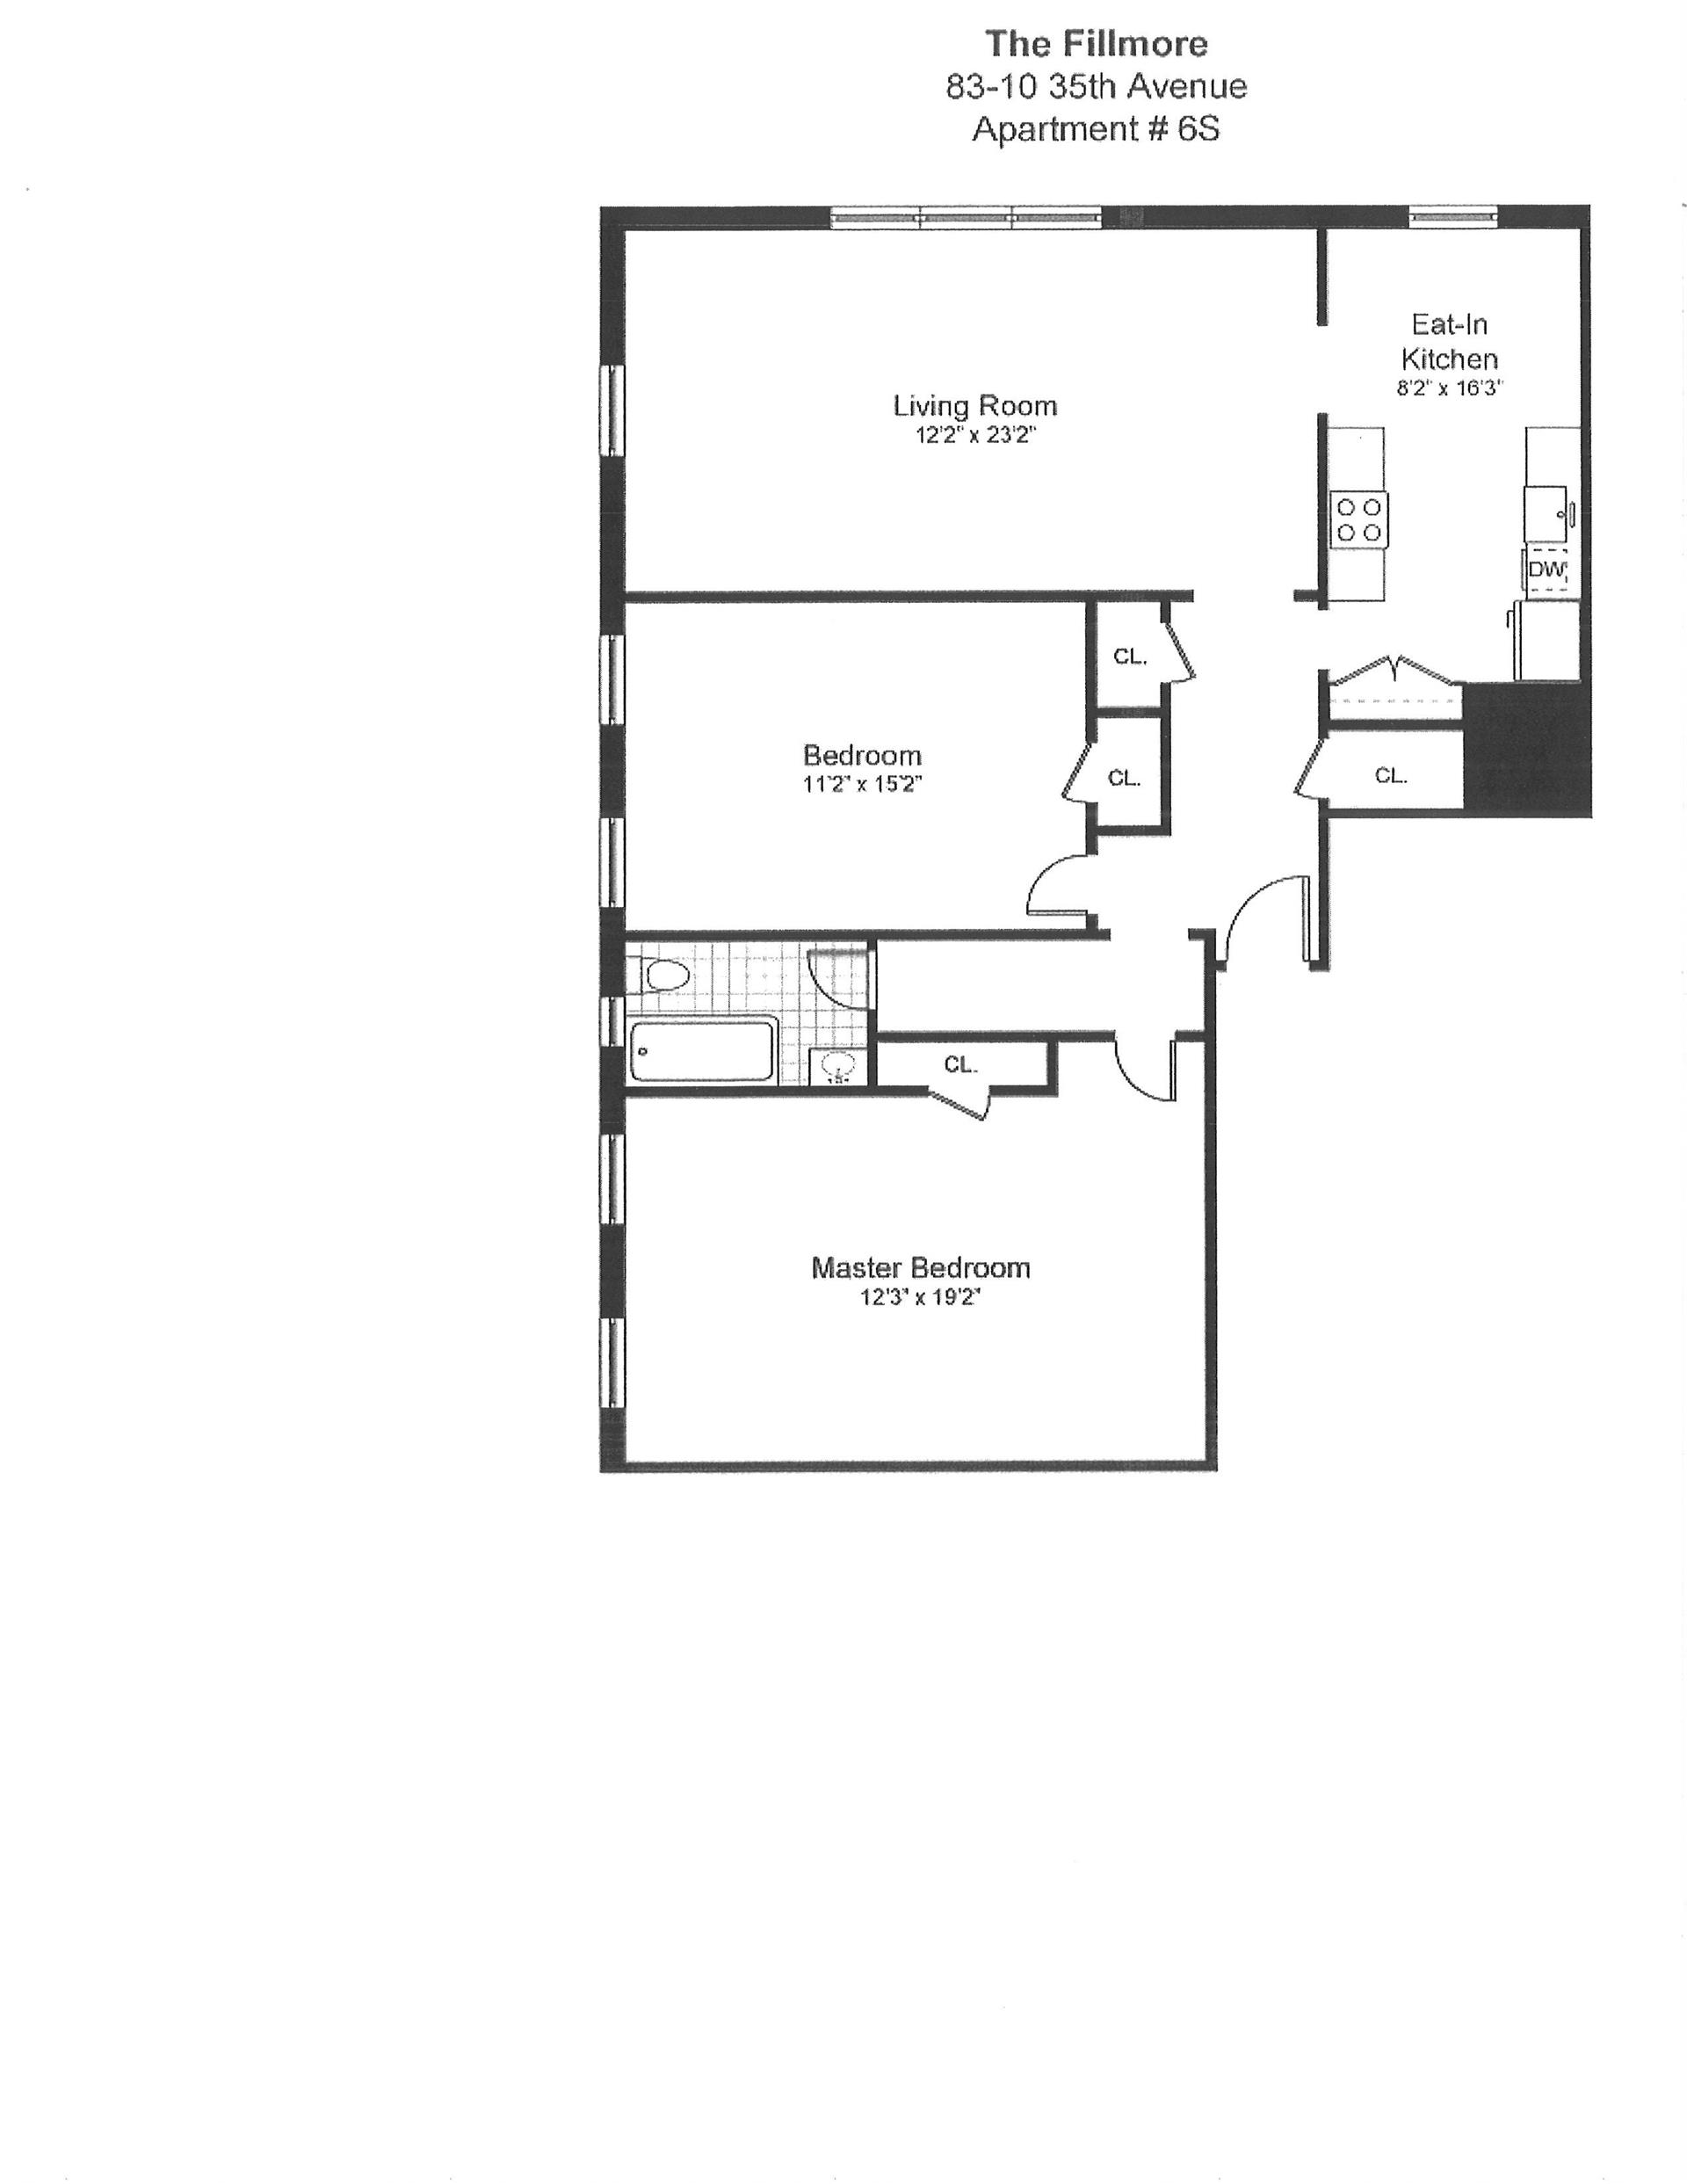 Floor plan of 83-10 35th Avenue, 6S - Jackson Heights, New York